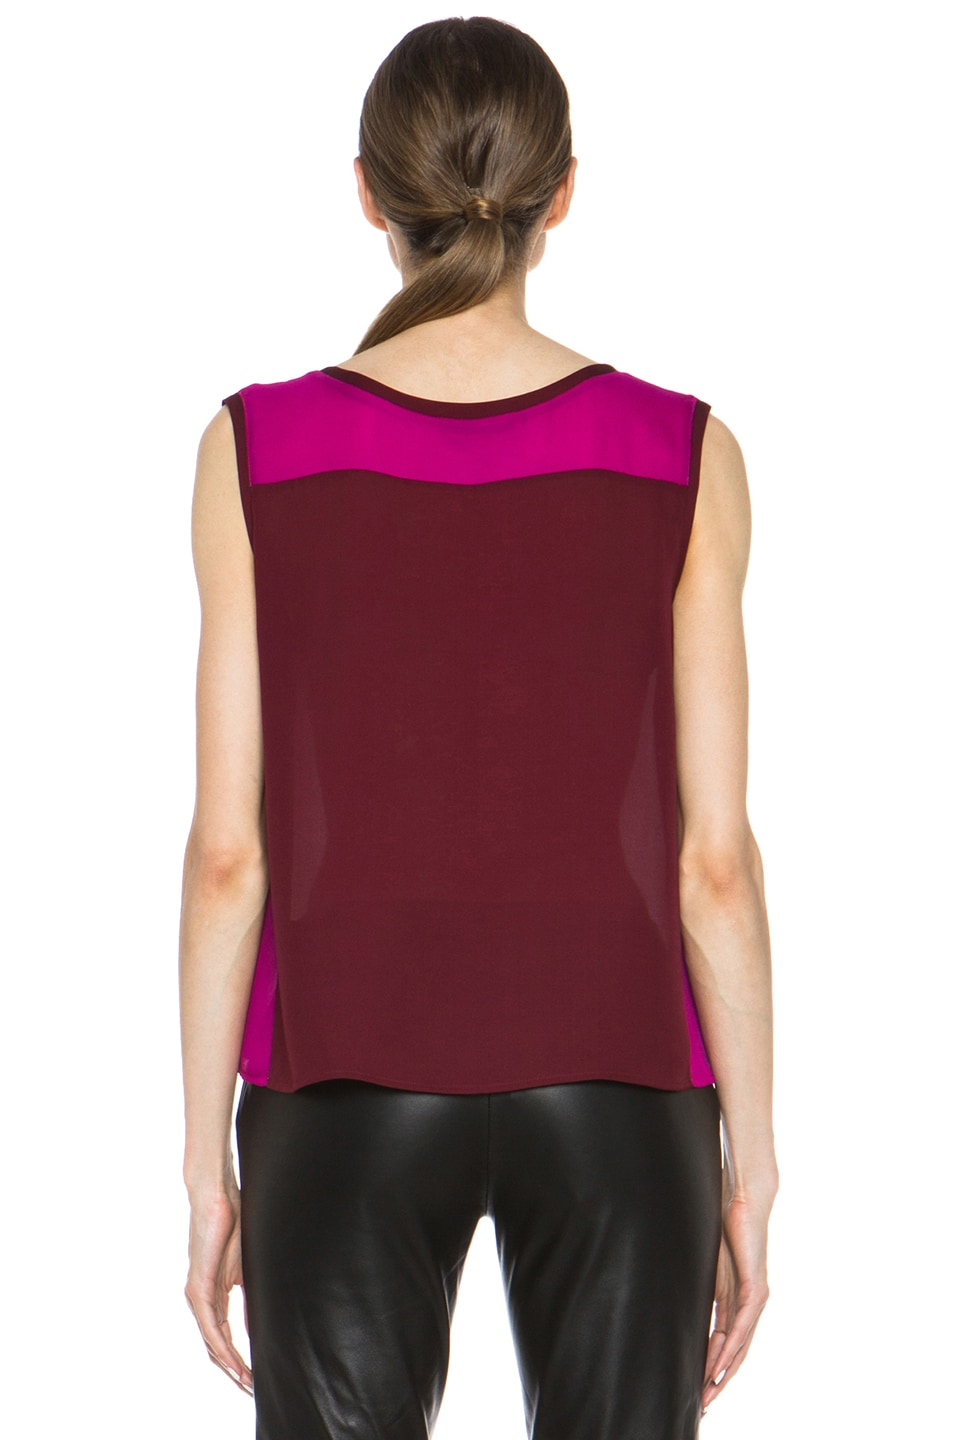 Image 4 of Nili Lotan Colorblock Sleeveless Tee in Cabernet & Petunia